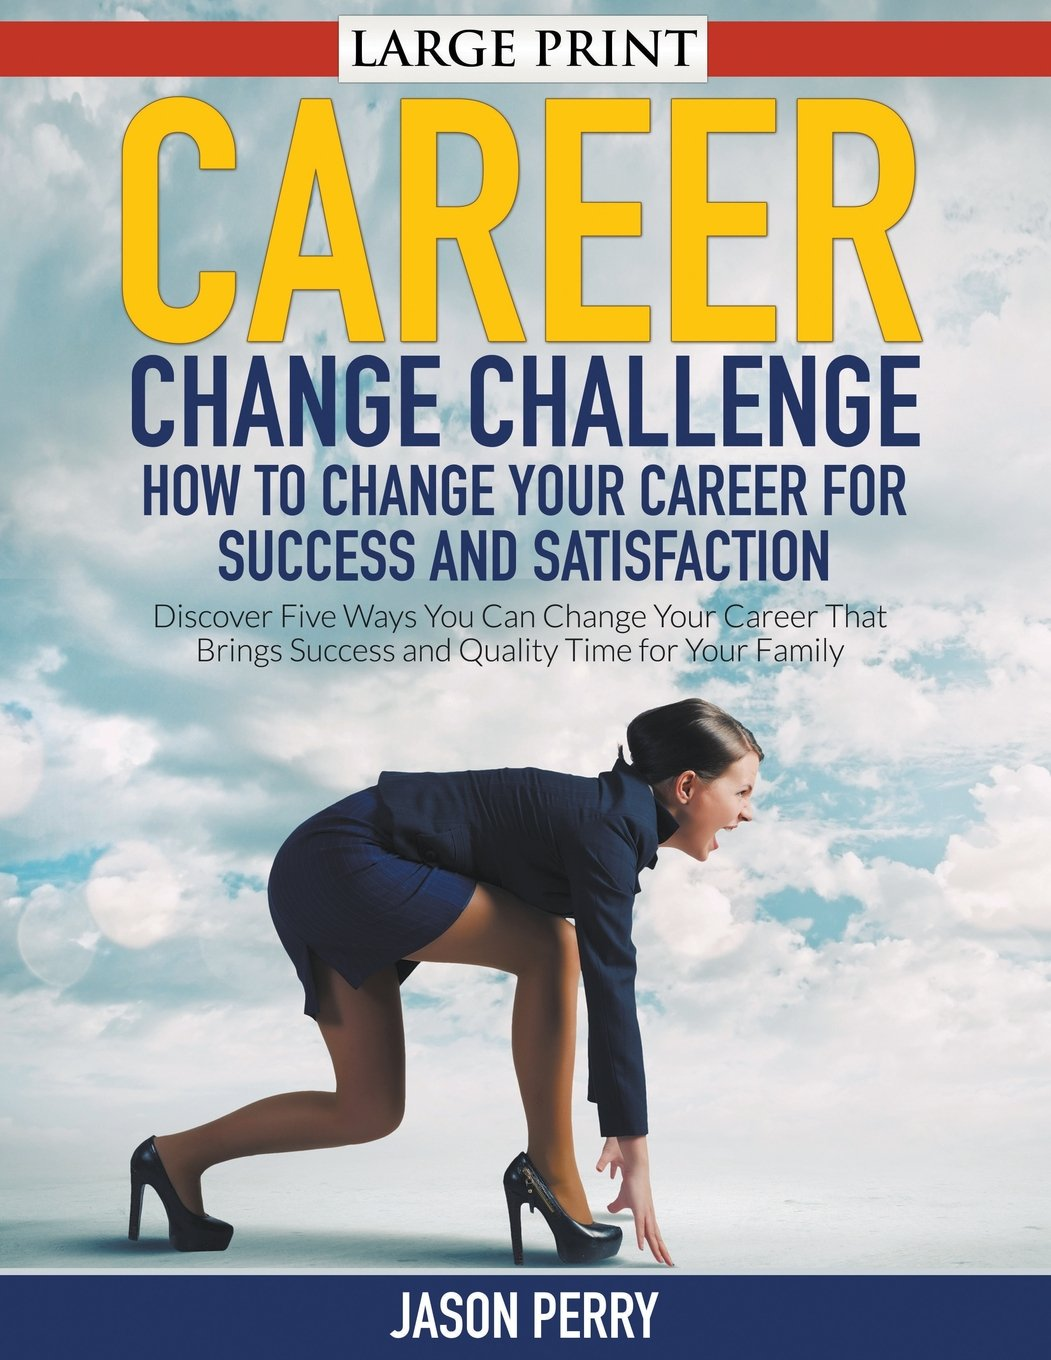 Career Change Challenge: How To Change Your Career For Success And Satisfaction (LARGE PRINT): Discover Five Ways You Can Change Your Career That Brings Success and Quality Time for Your Family pdf epub